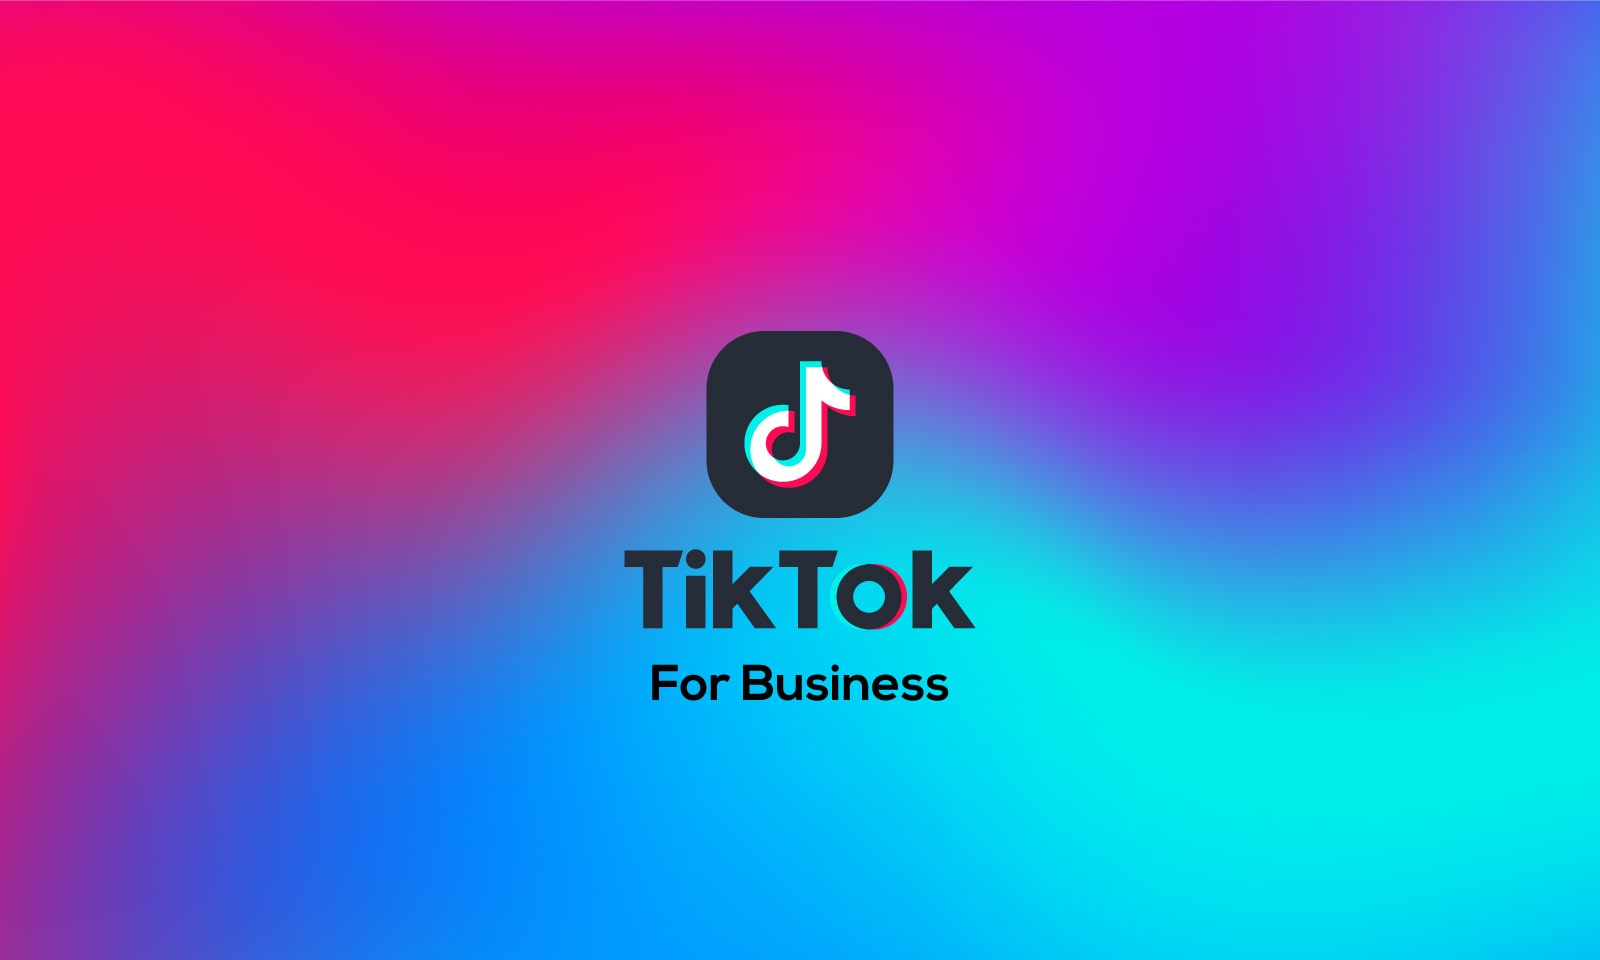 TikTok For Business: 5 Things To Avoid To Ensure Social Media Success